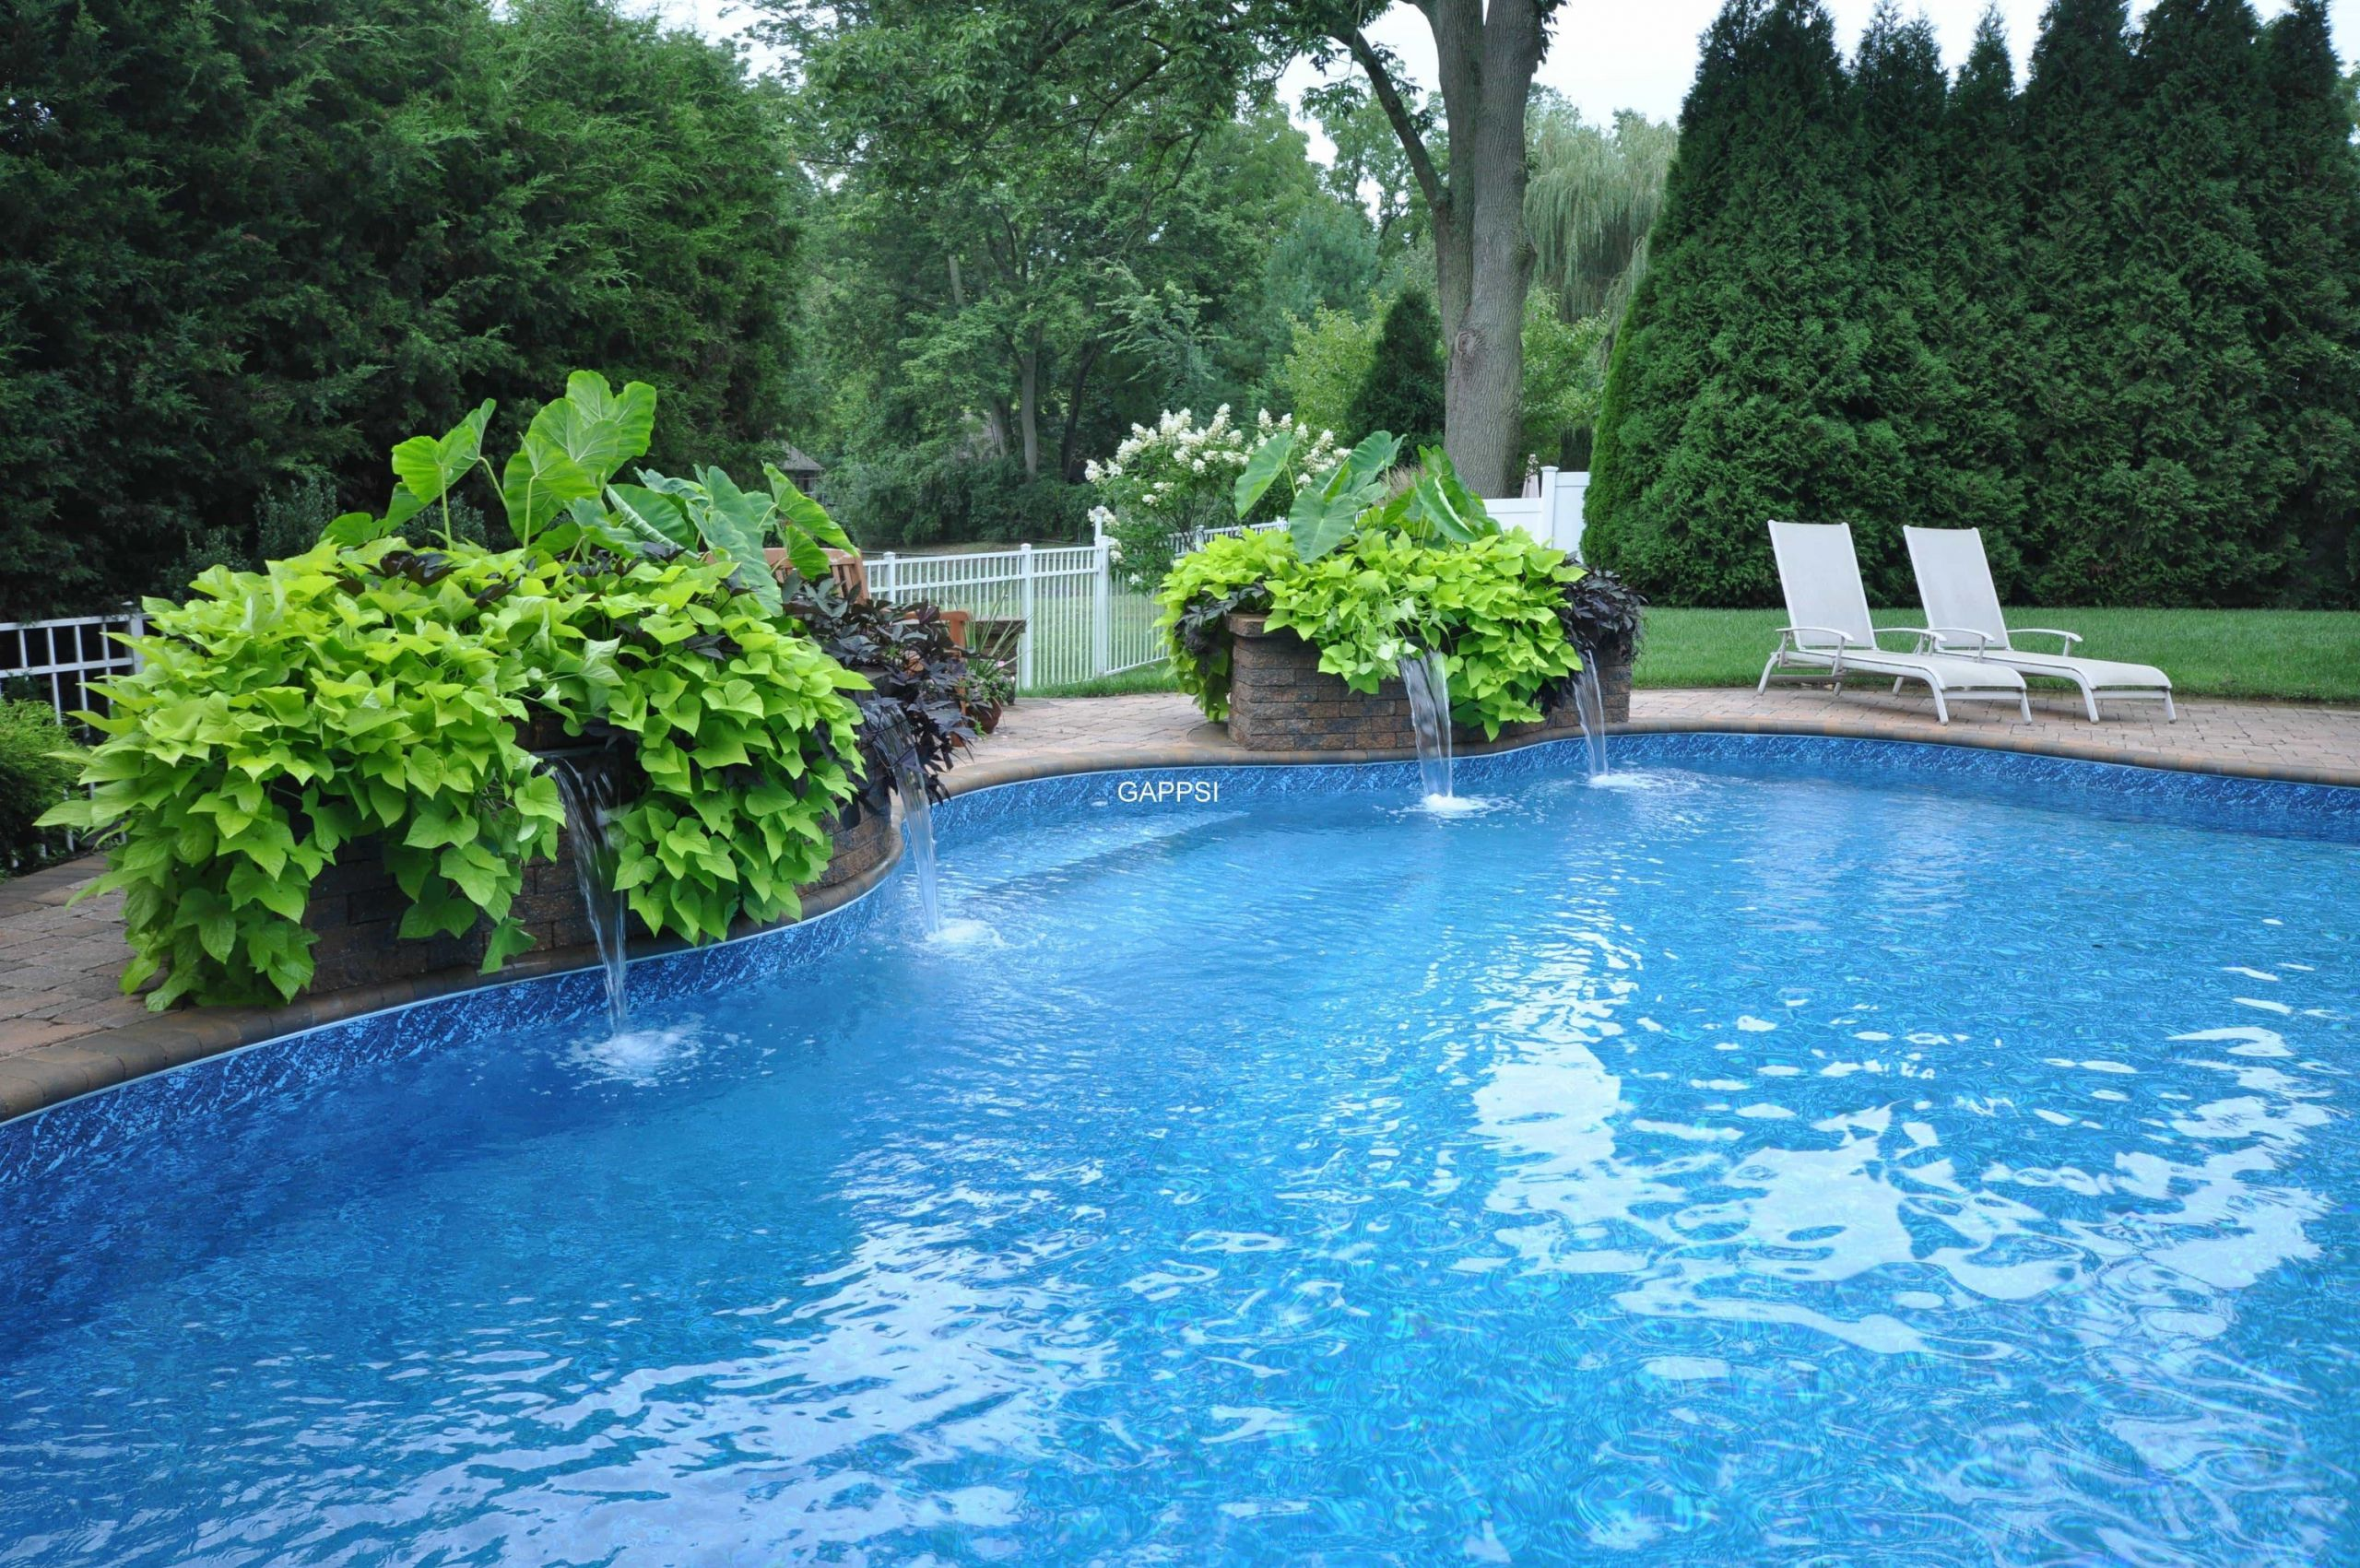 Outdoor Landscape Pool  Outdoor Water Features & Pool Landscaping